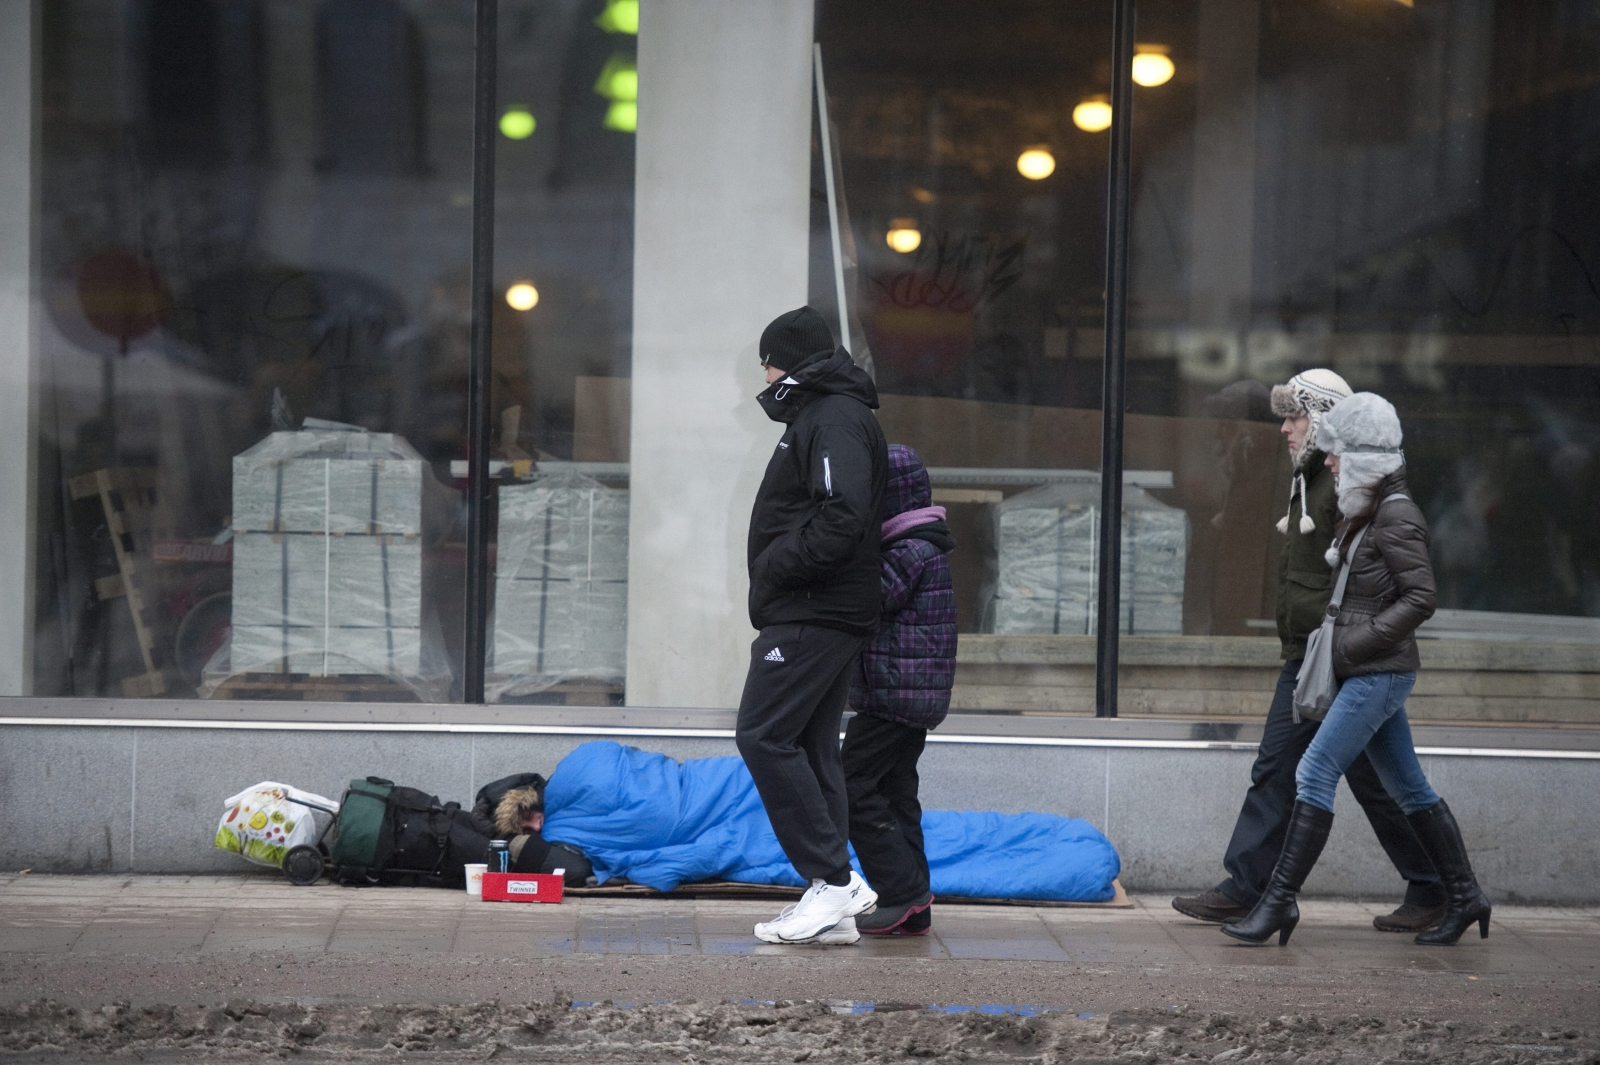 A homeless man in Stockholm